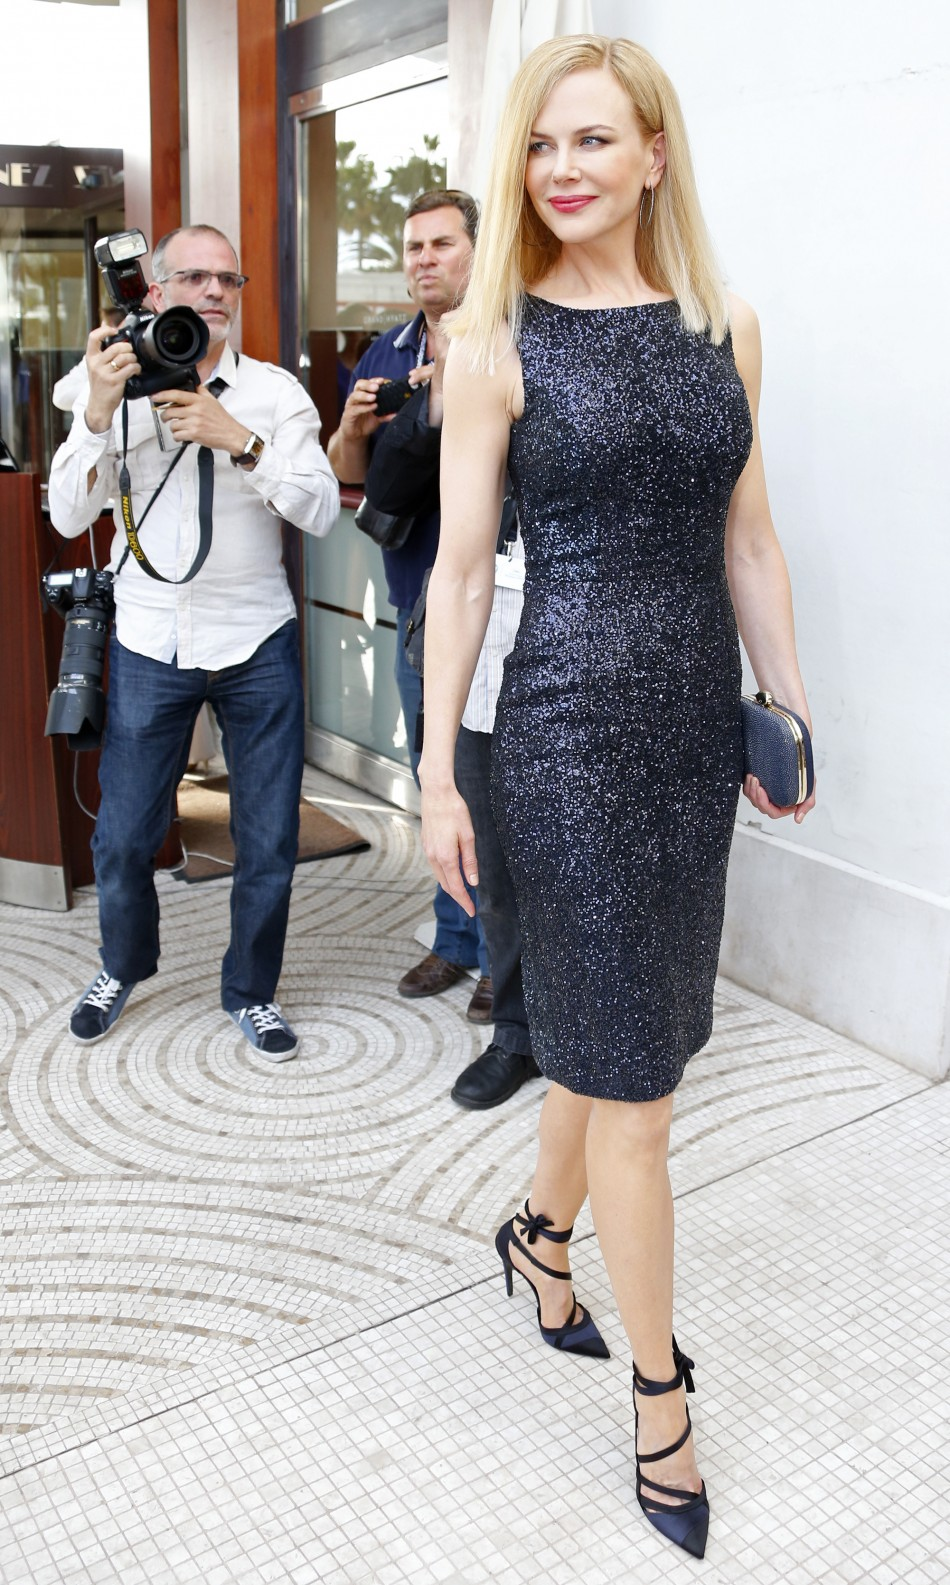 On day one she attended the Jury photo call wearing a very chic Alexander McQueen dress